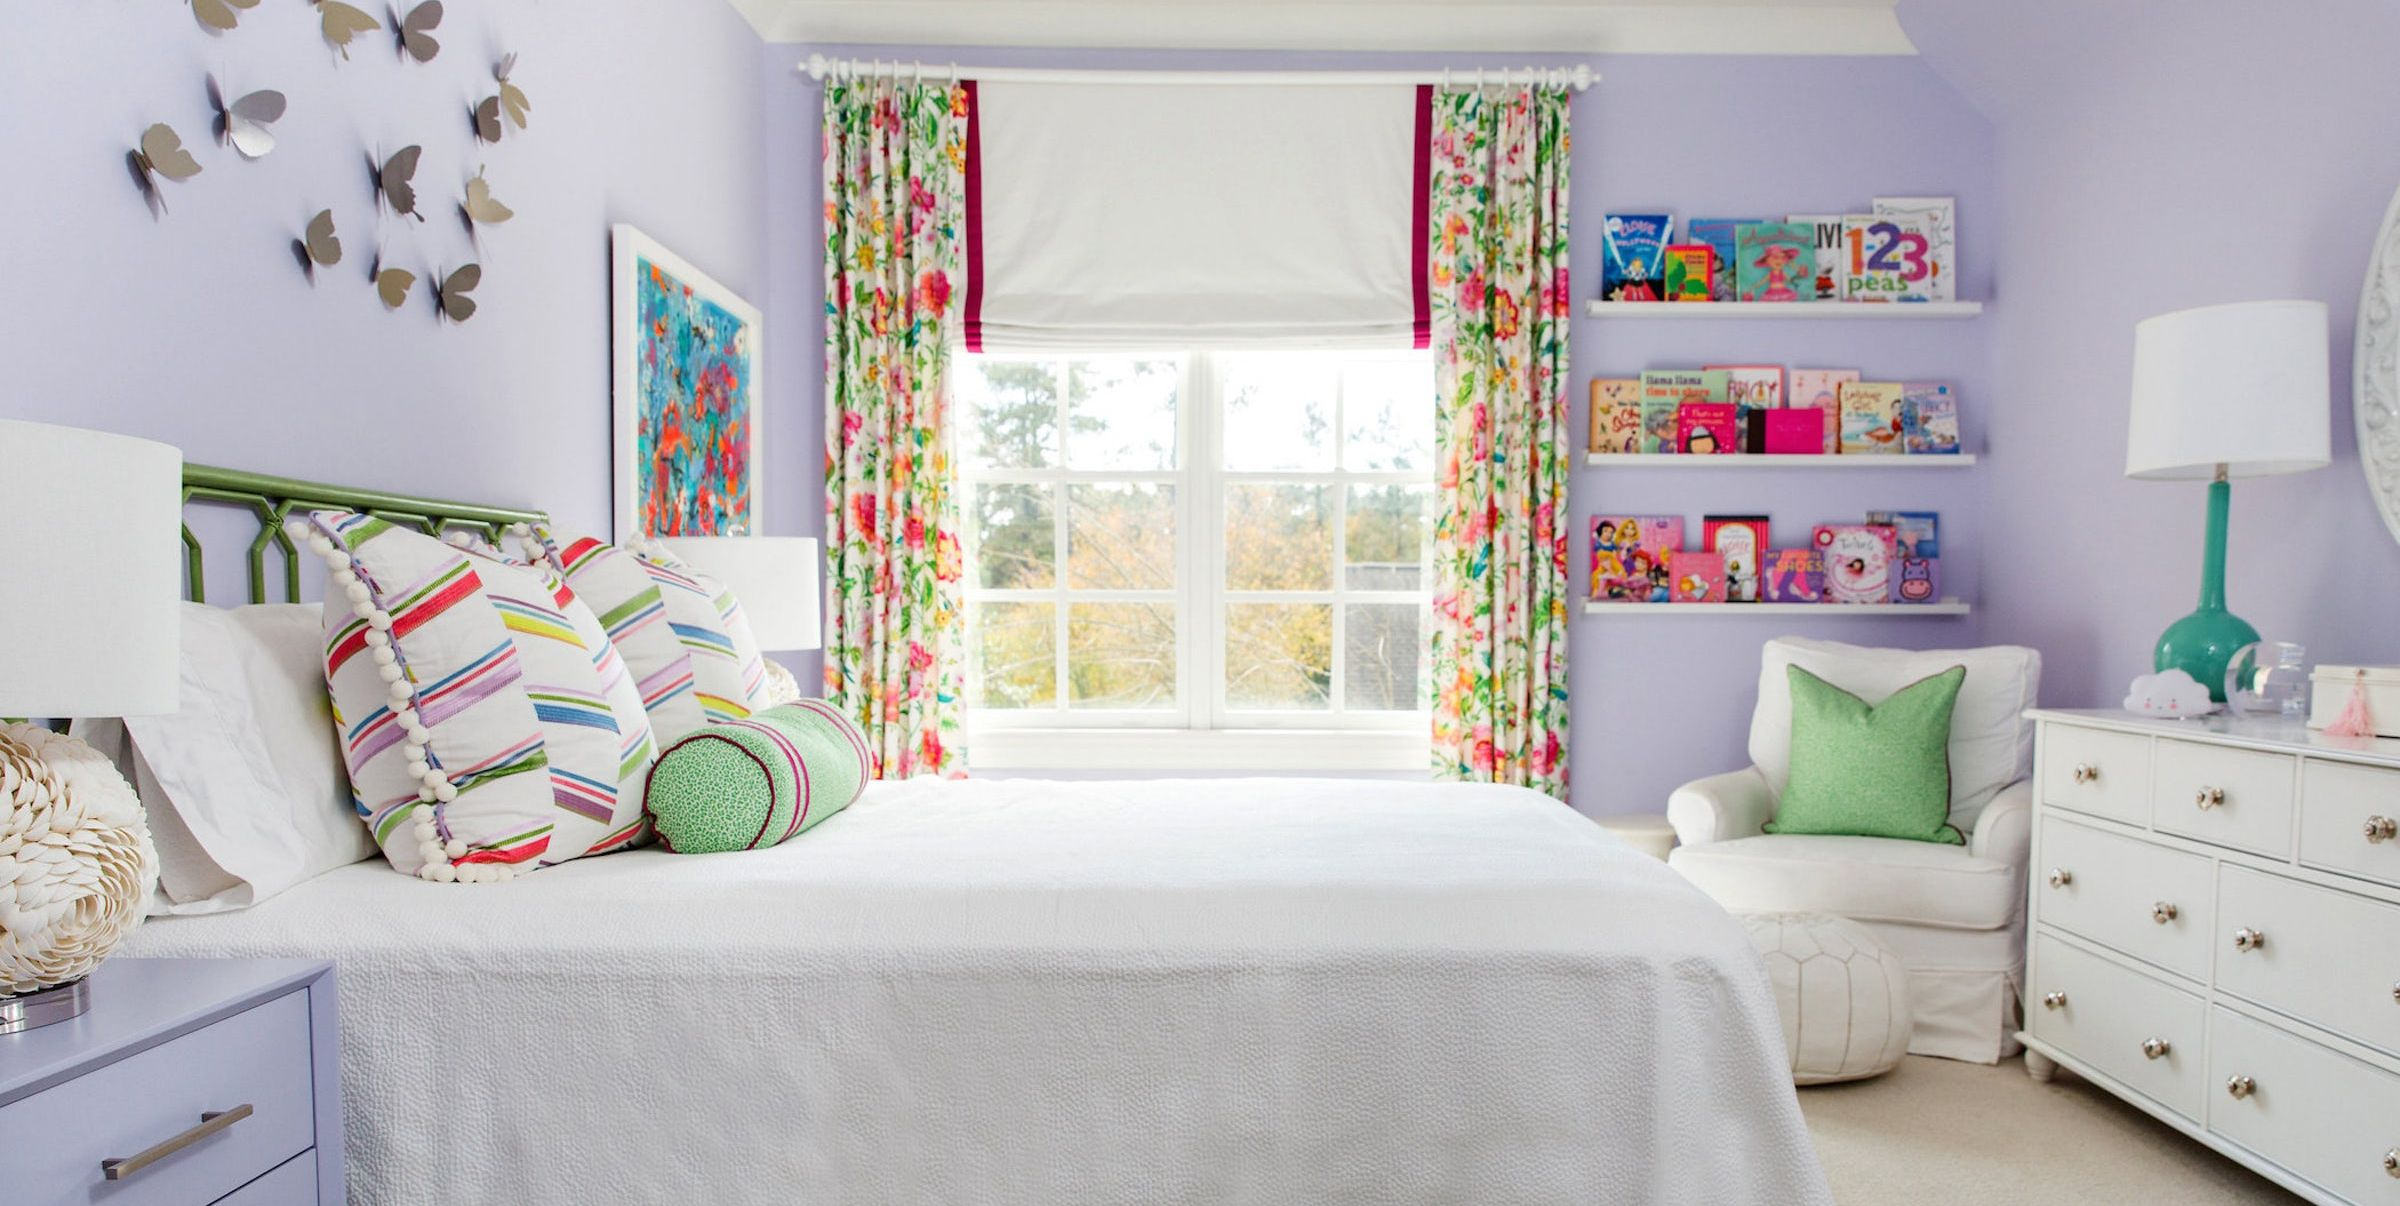 Teenage Bedroom Decorating Ideas And Pictures 15 creative girls room ideas - how to decorate a girl's bedroom